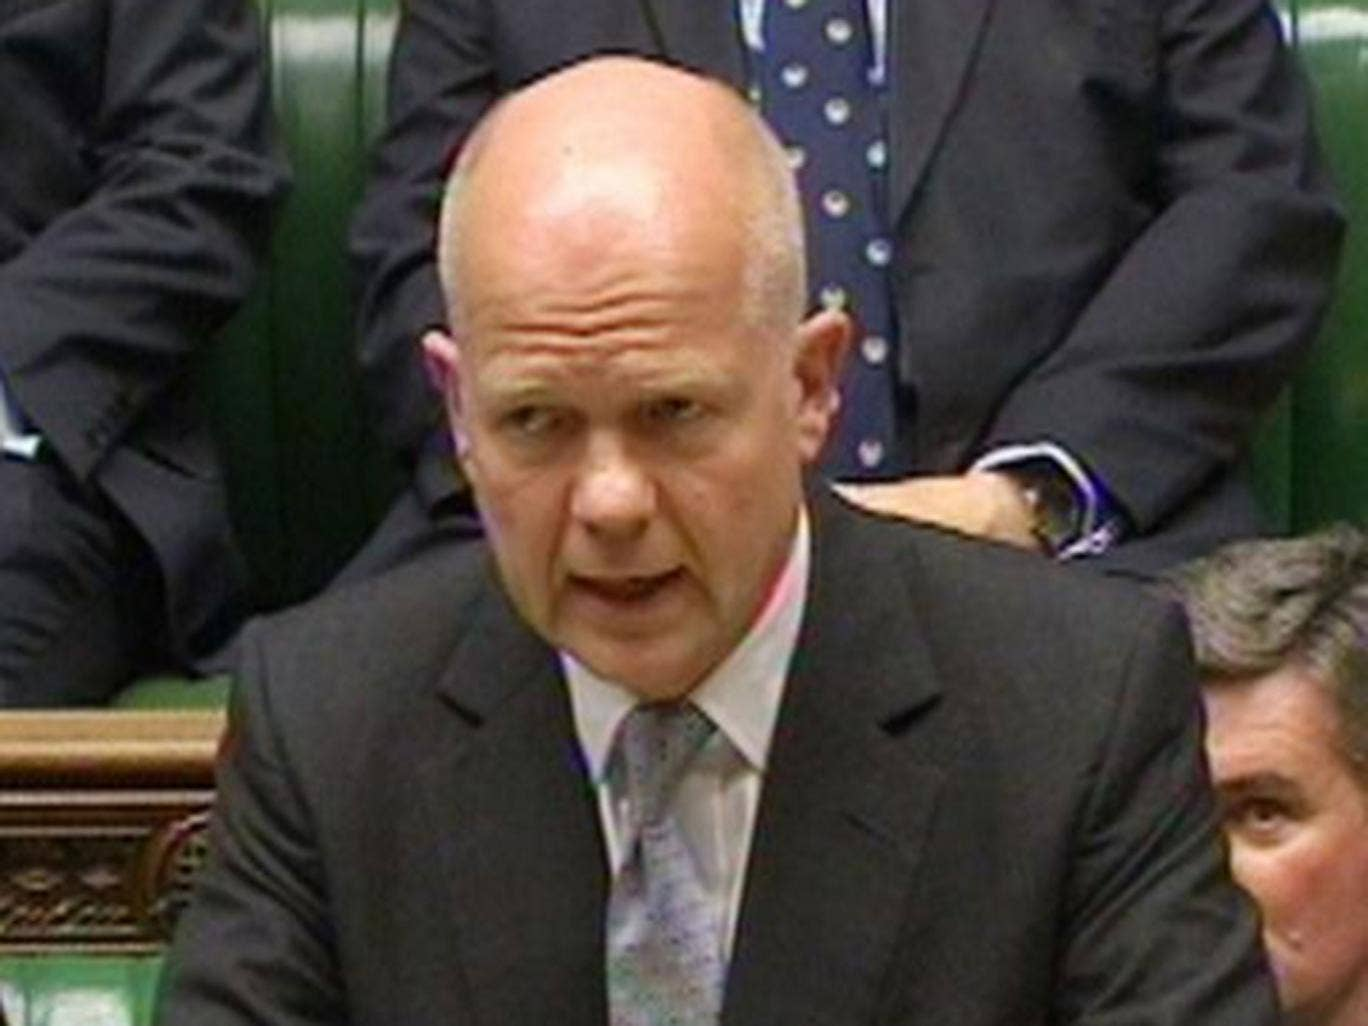 William Hague speaking in the House of Commons